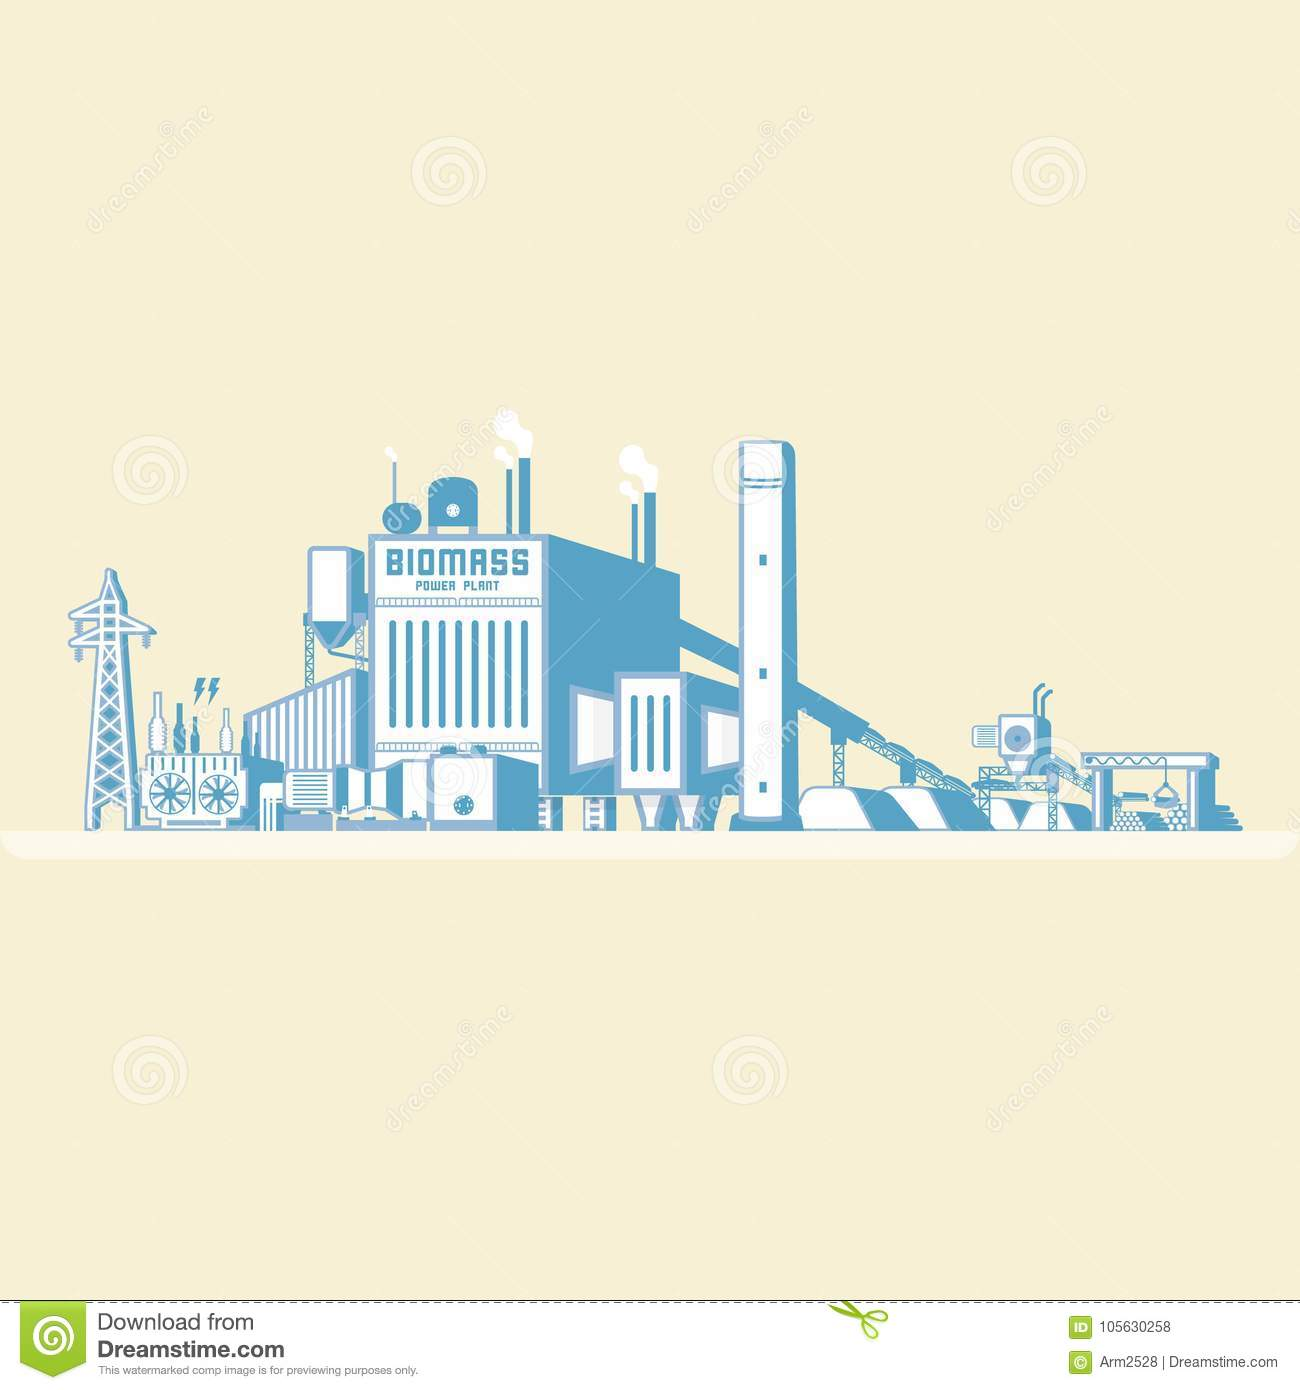 Biomass Energy, Biomass Power Plant Stock Vector - Illustration of ...